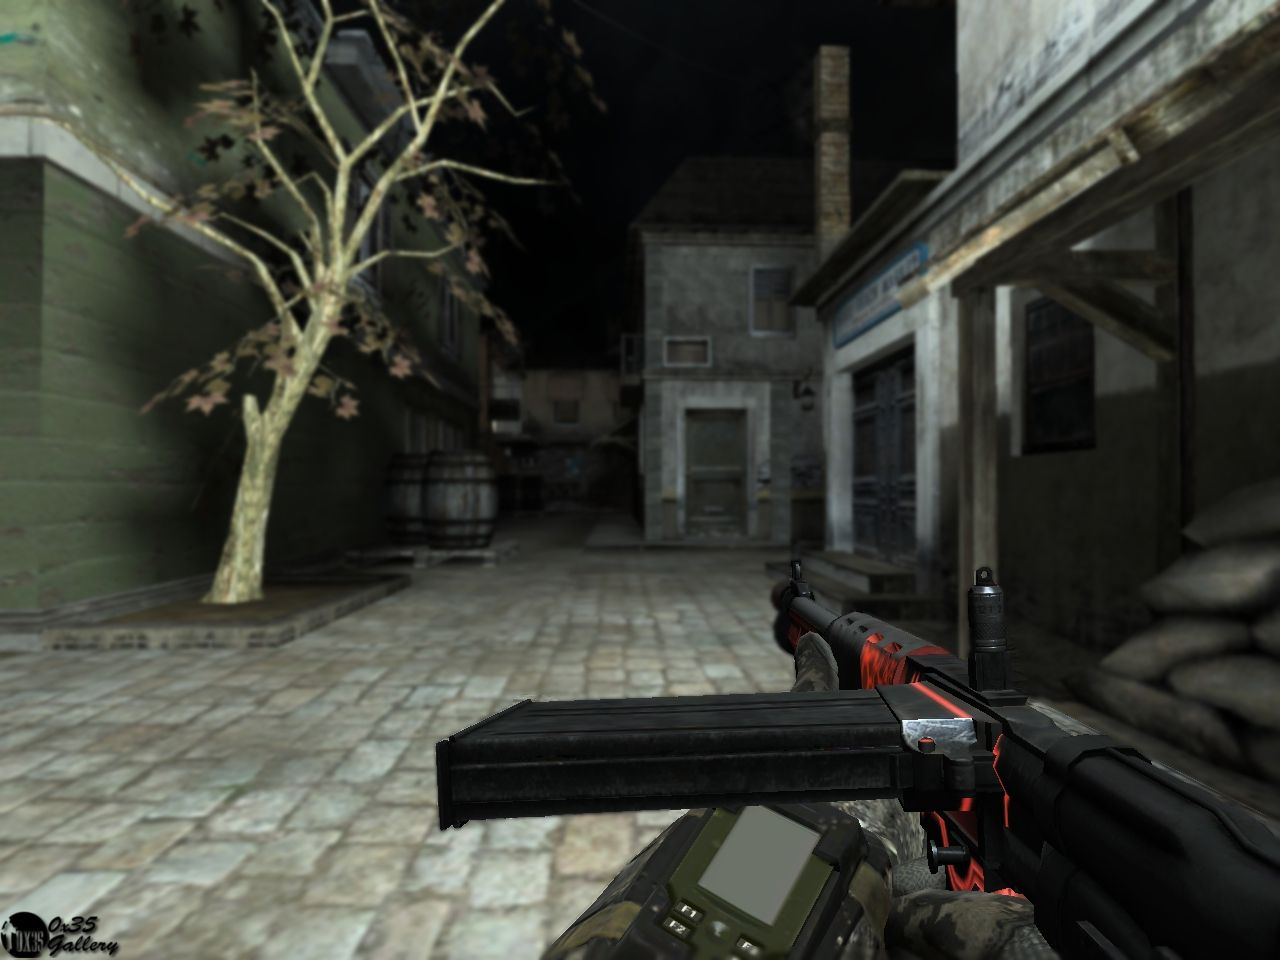 FG42 Prominence